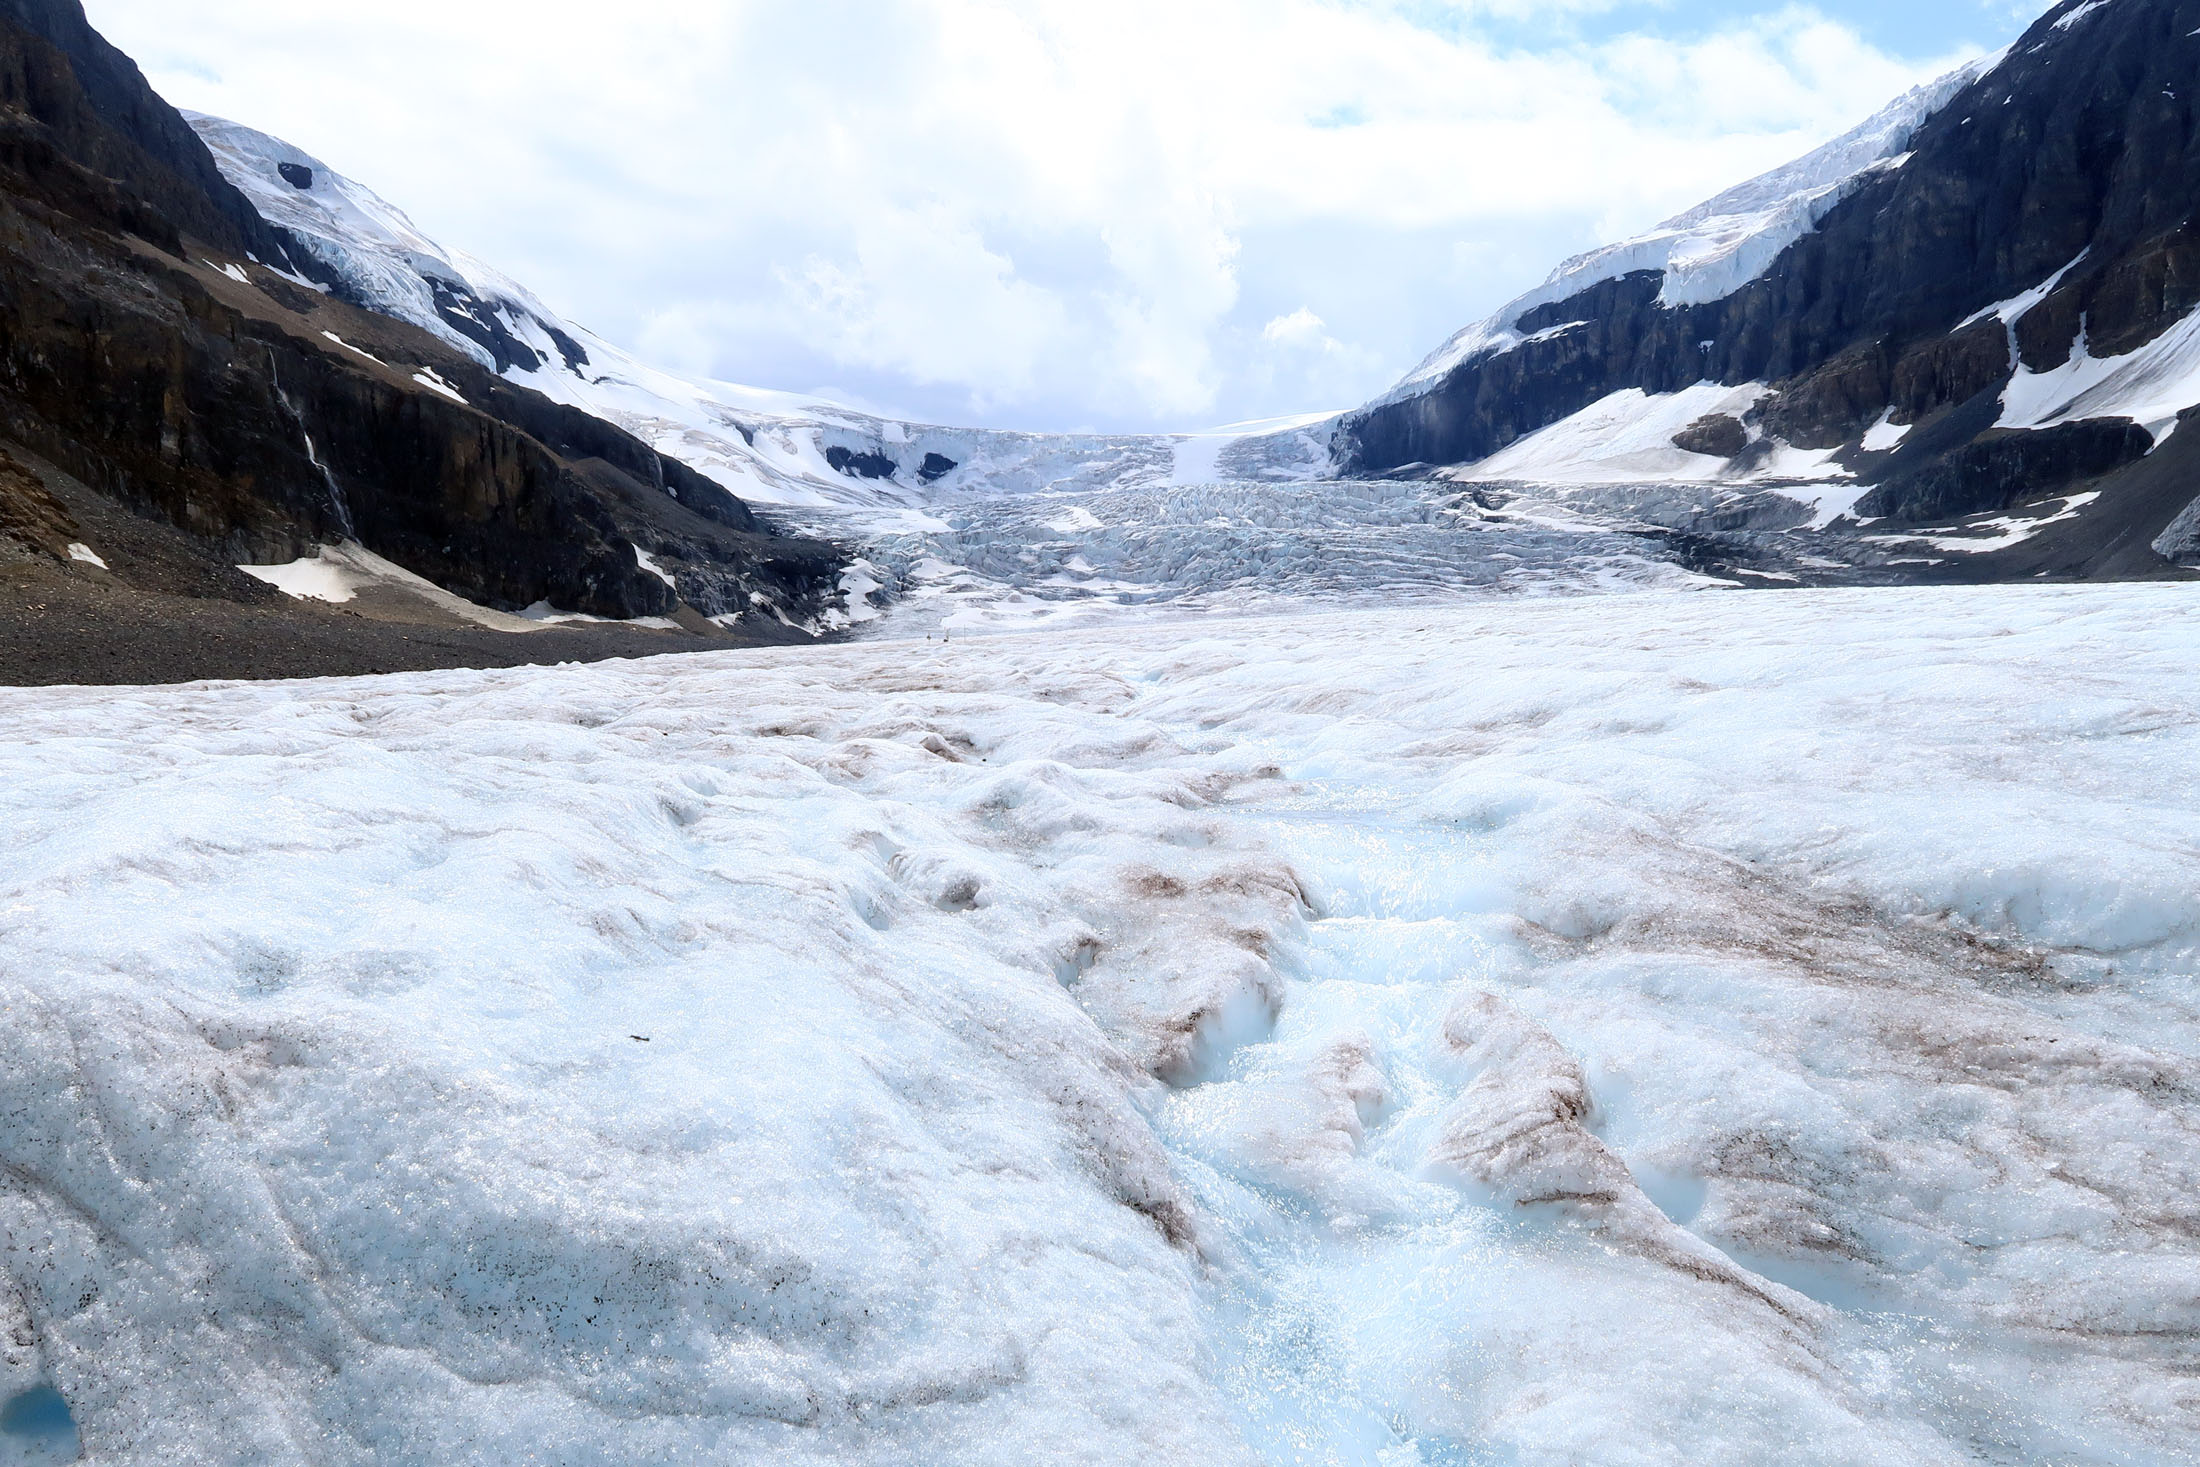 While the Athabasca Glacier has been gradually shrinking for 150 years, the pace has increased this century as the average temperature rises. (Craig Davis/craigslegztravels.com)